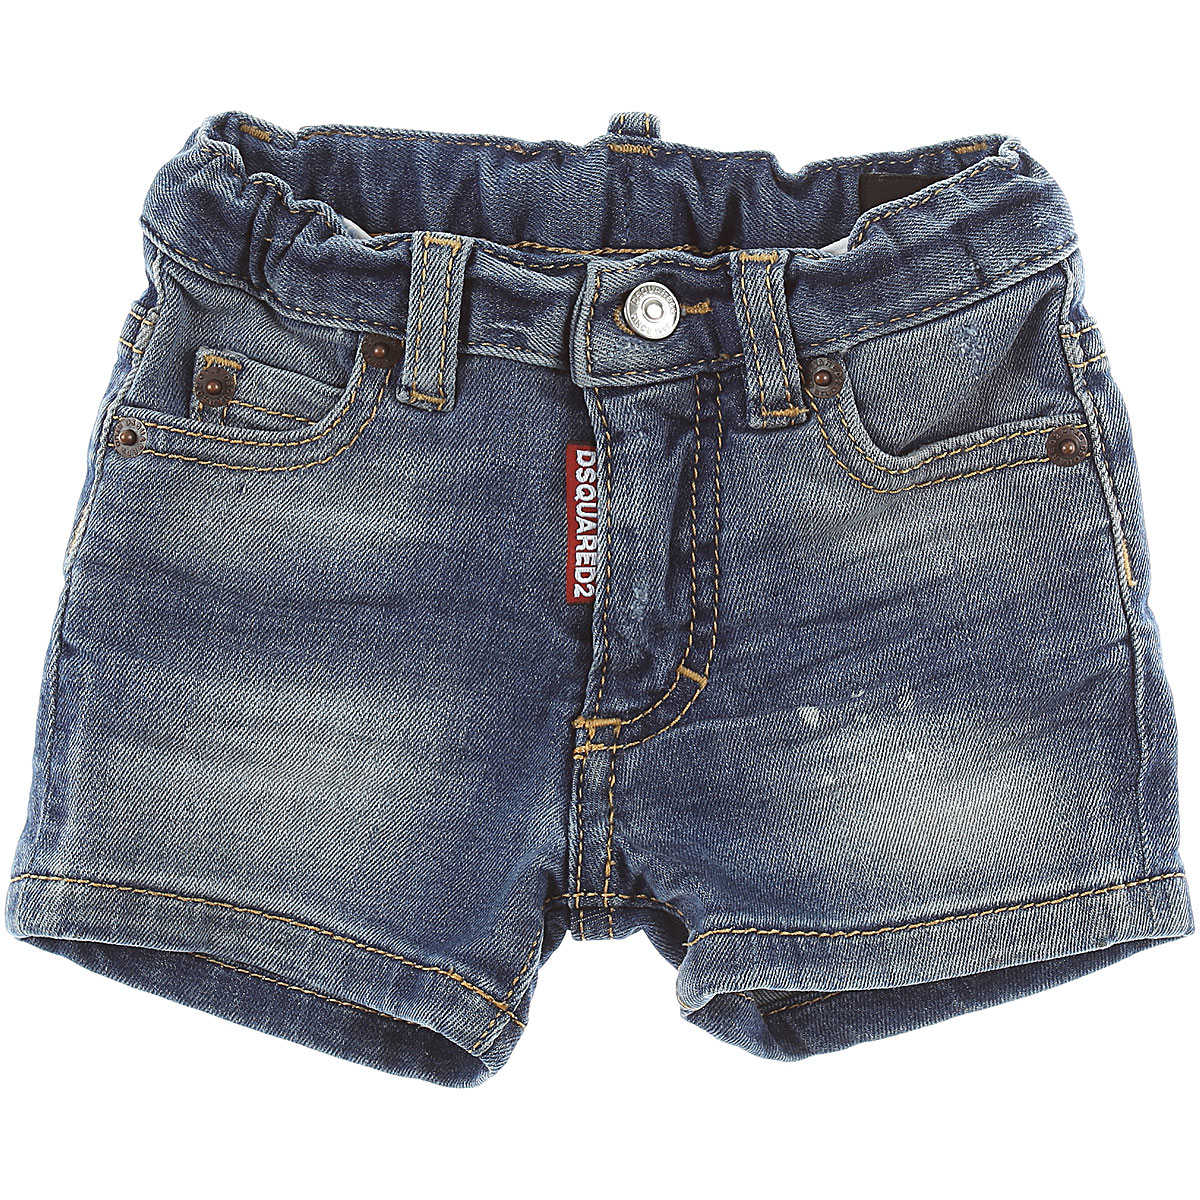 Dsquared2 Baby Shorts for Boys On Sale in Outlet Denim Blue SE - GOOFASH